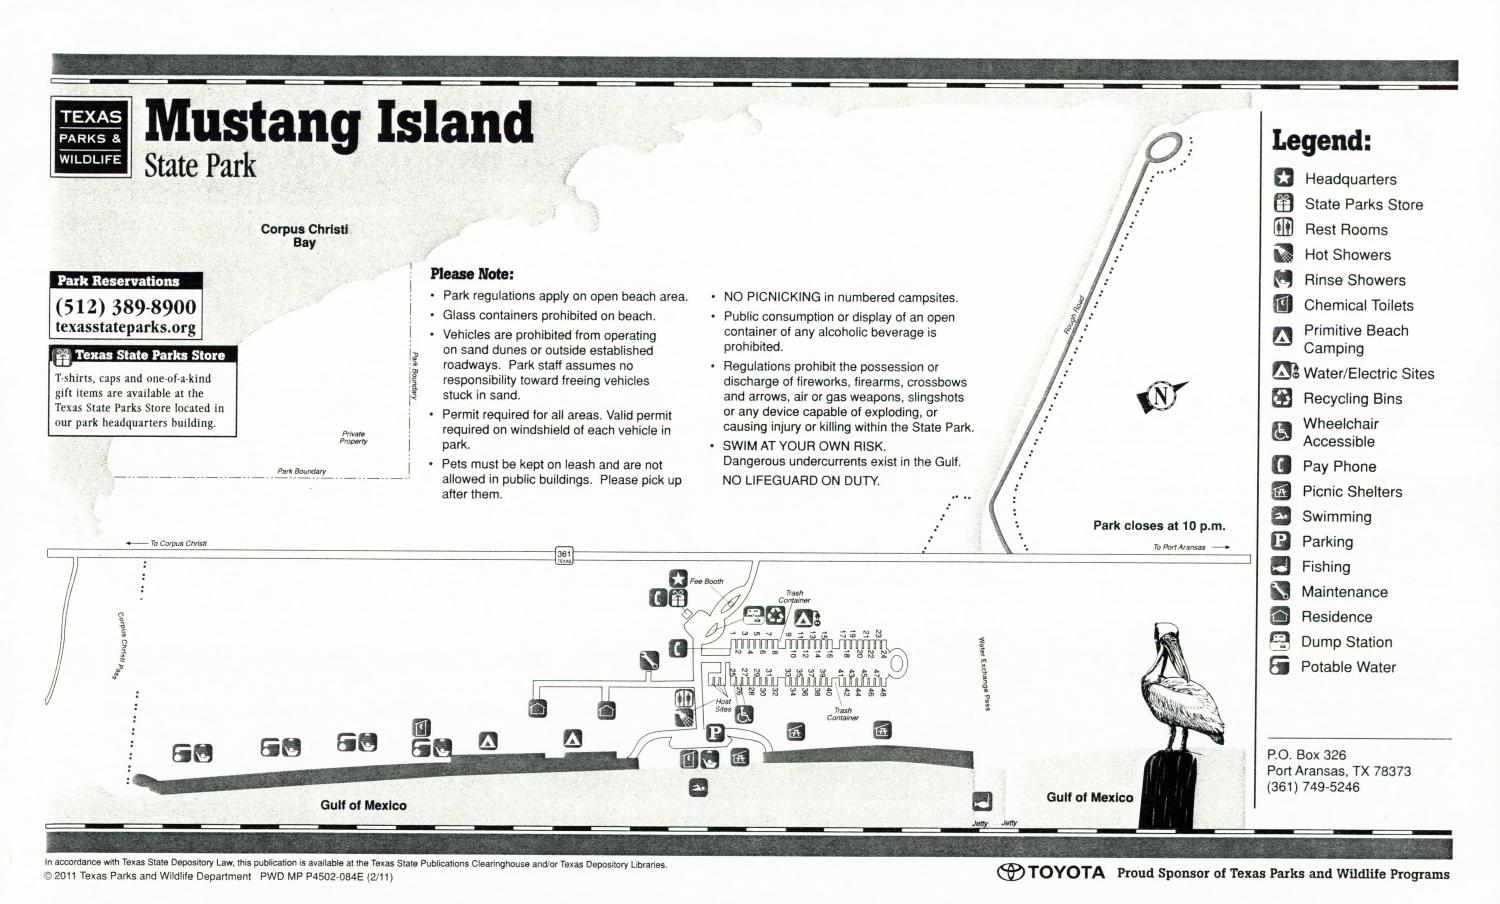 Mustang Island State Park, Map of the Mustang Island State Park outlining hiking trails and highlighting activities, facilities, and other features such as bathrooms, lodgings, water/electric, etc. It also contains general information for the park and for the Texas Parks and Wildlife Department.,